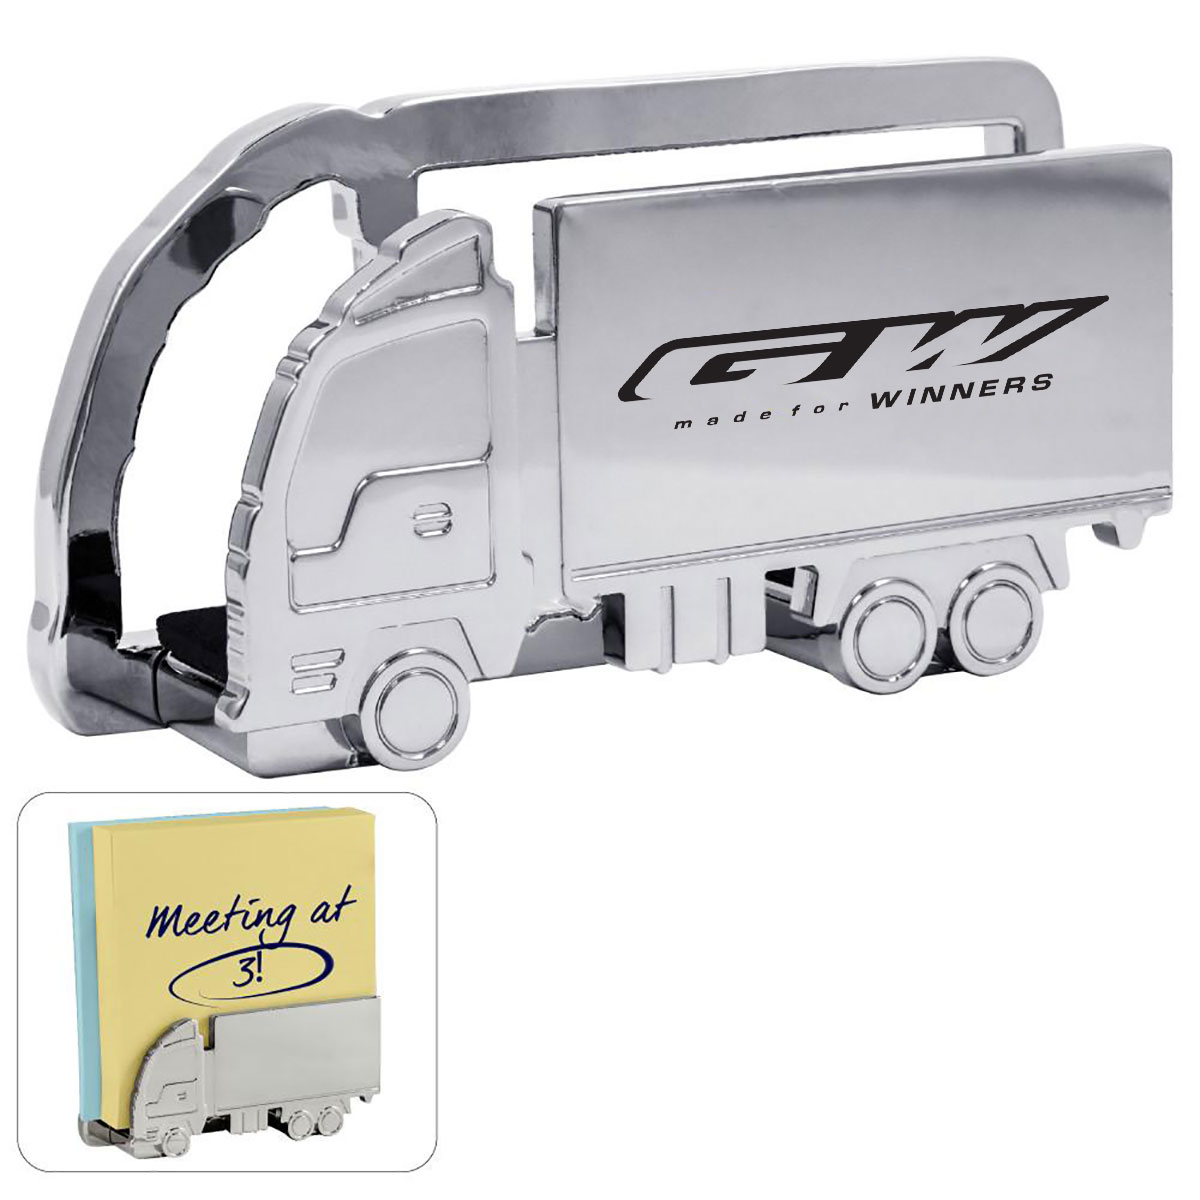 TRUCK SHAPED METAL MEMO-MAIL HOLDER